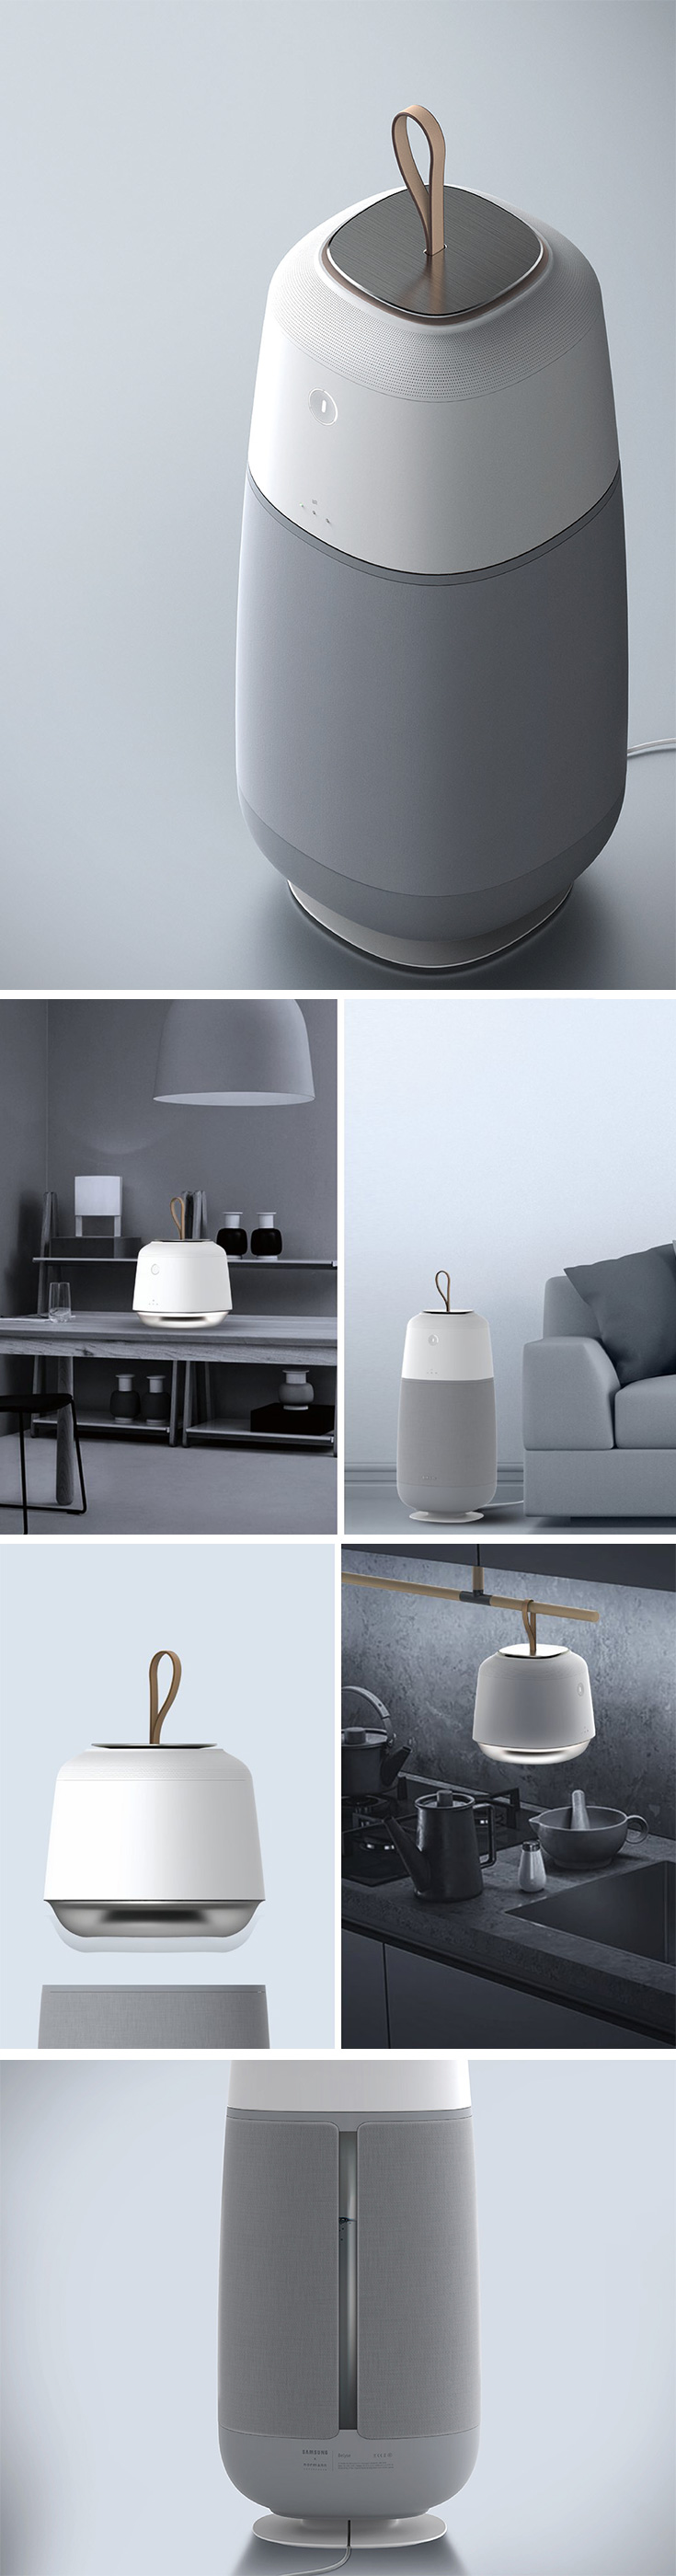 "In Swedish, ""Belyse"" means ""to enlighten"" and the Belyse Air Solution aims to do just that in your kitchen and other living spaces. This minimalist lighting and air purifying pod is capable of being carrying and placed almost anywhere but is specifically designed for use in the kitchen. Using a modern efficient filtration system, it also helps eliminate harmful byproducts of cooking like formaldehyde."